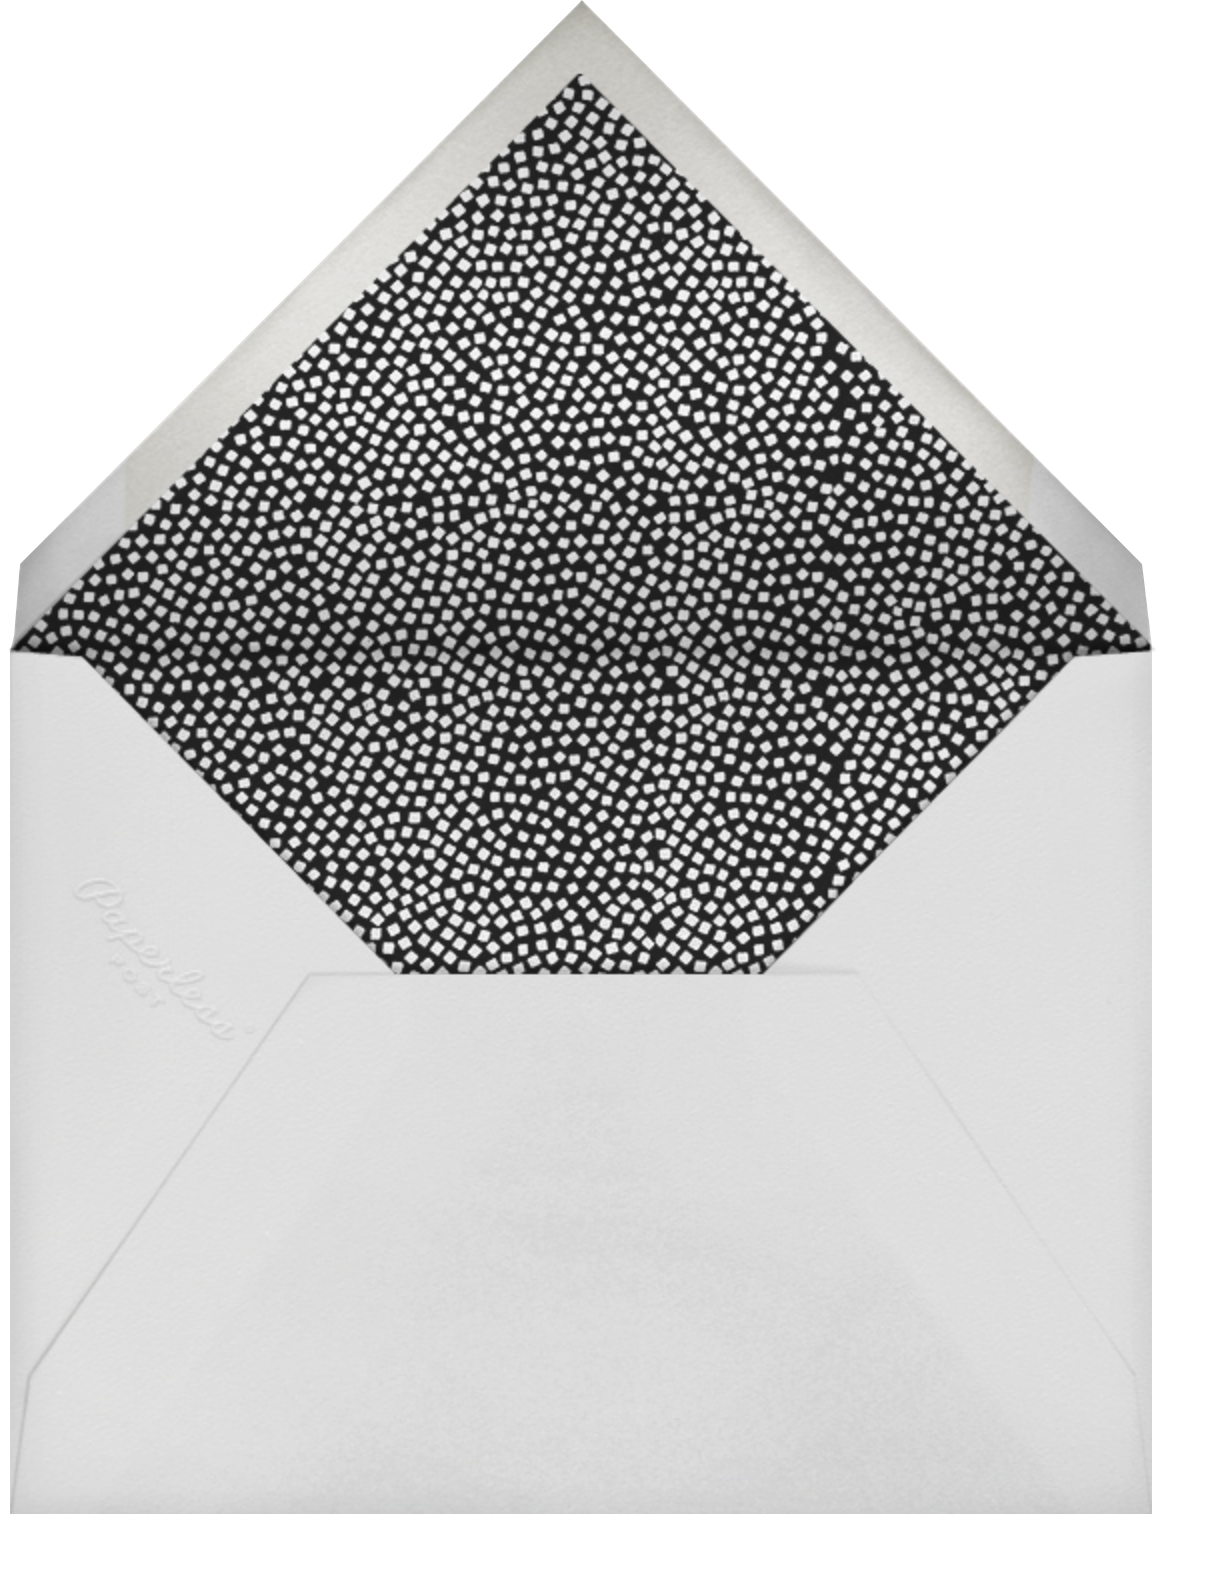 Kinetic Flow - Kelly Wearstler - Reception - envelope back